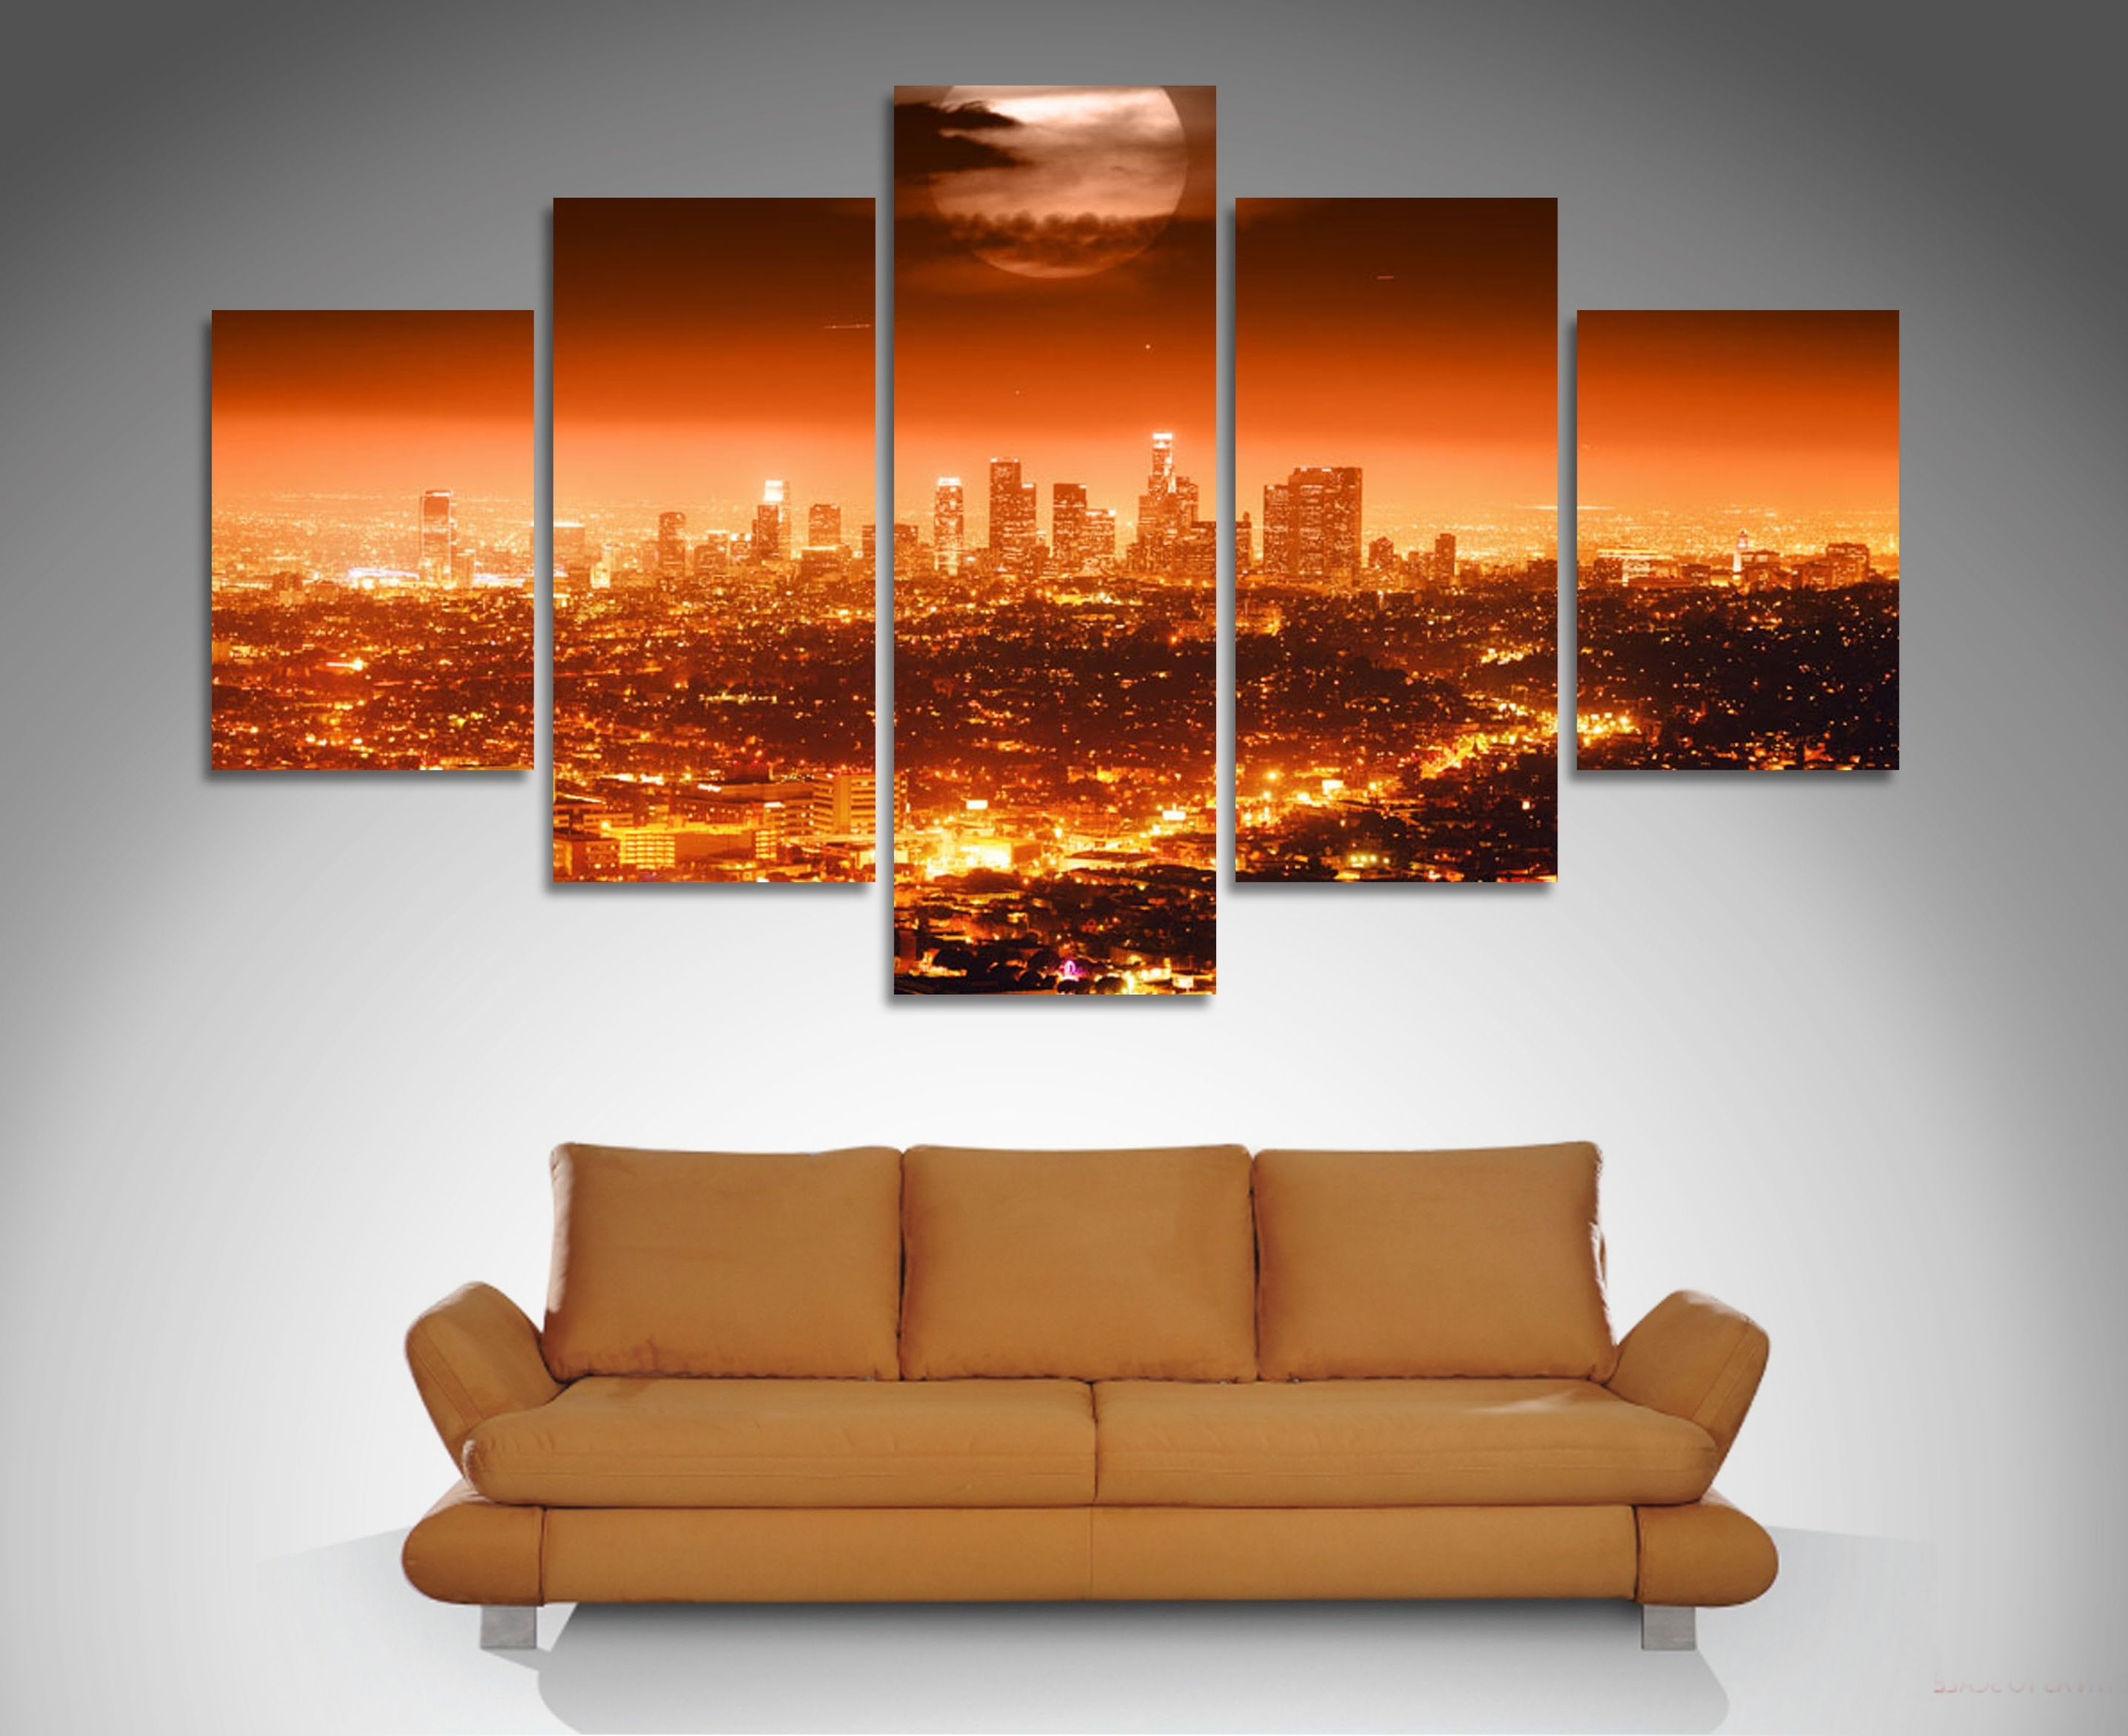 Los Angeles Wall Art Regarding Well Known Los Angeles 5 Panel Wall Art Canvas Print (View 3 of 15)